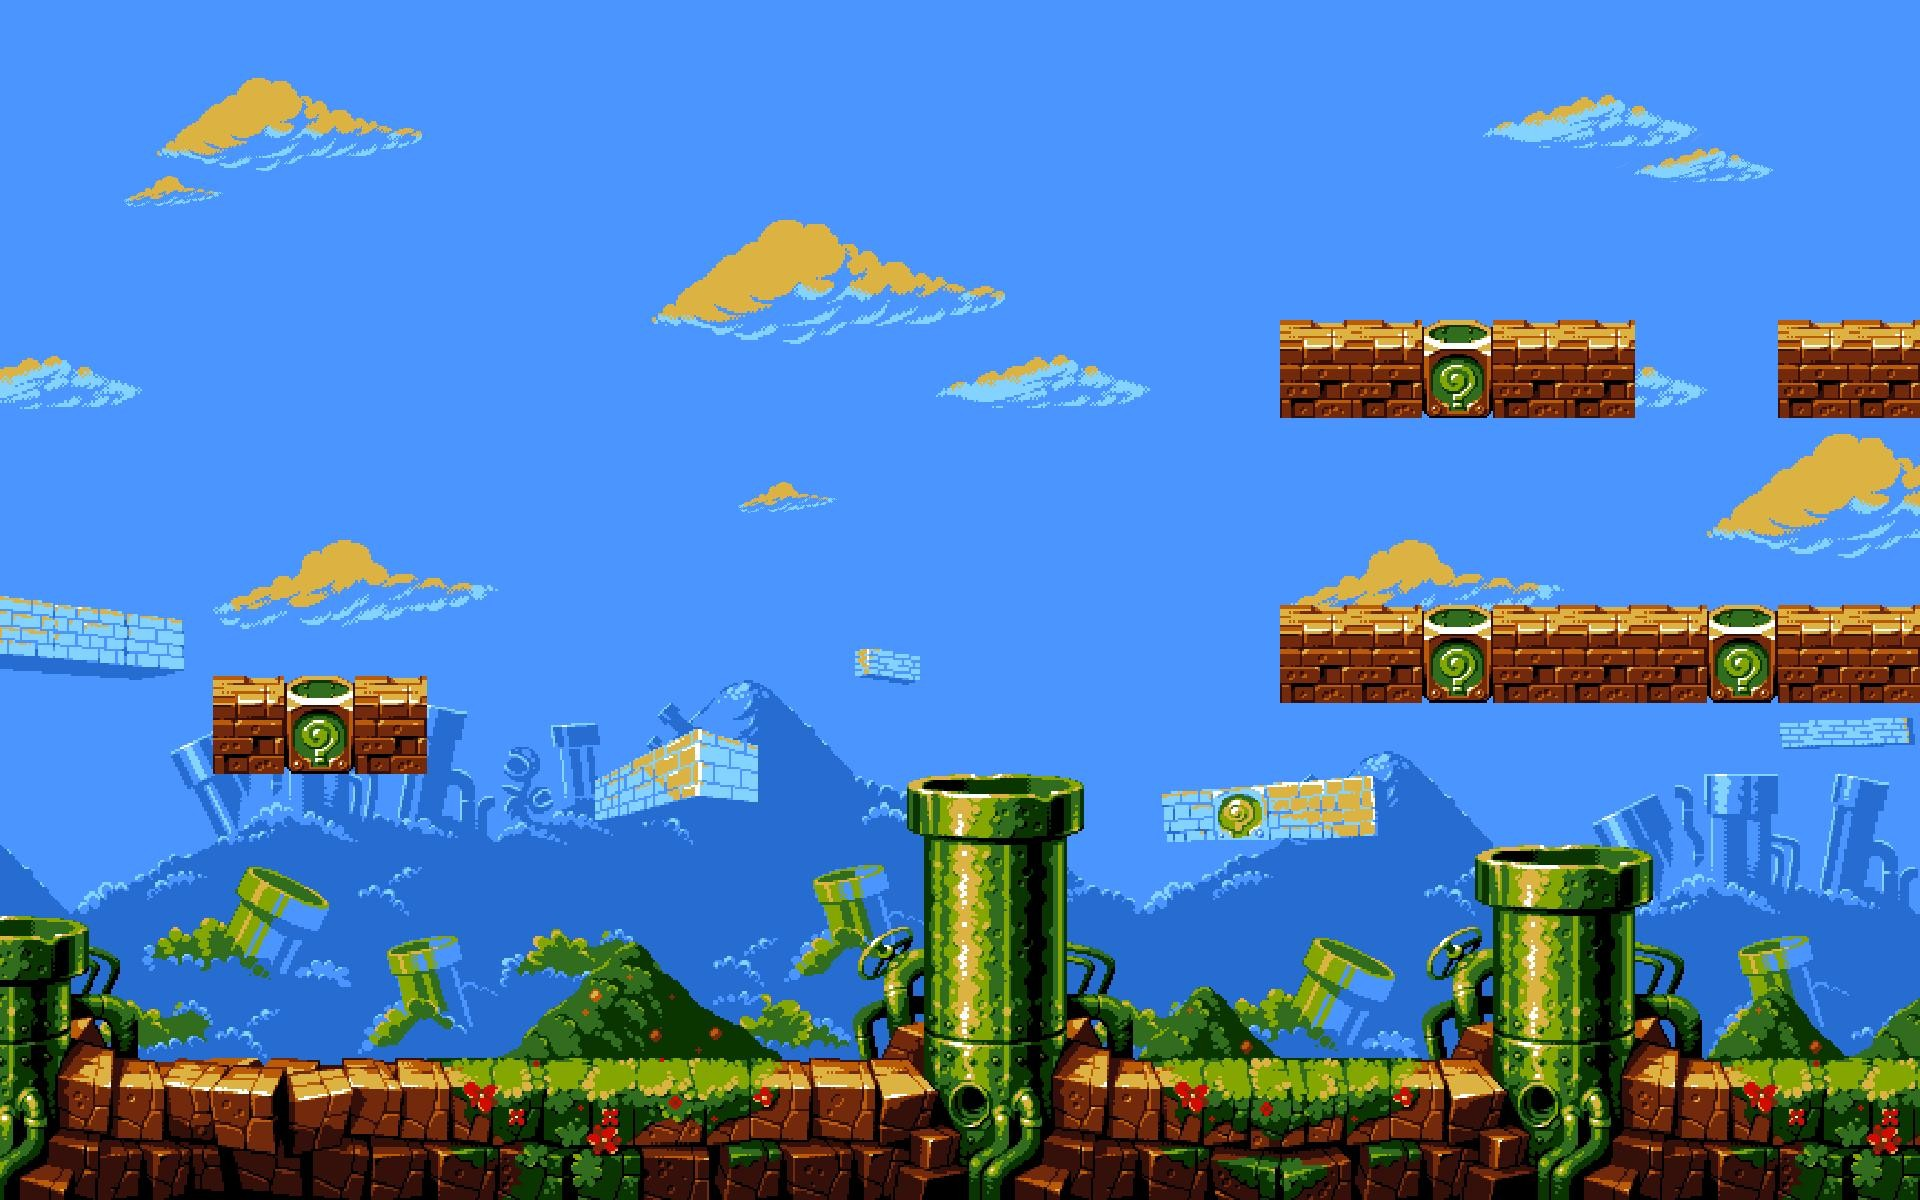 … super mario bros level 1 1 dual screen wallpaper by hd wallpapers …